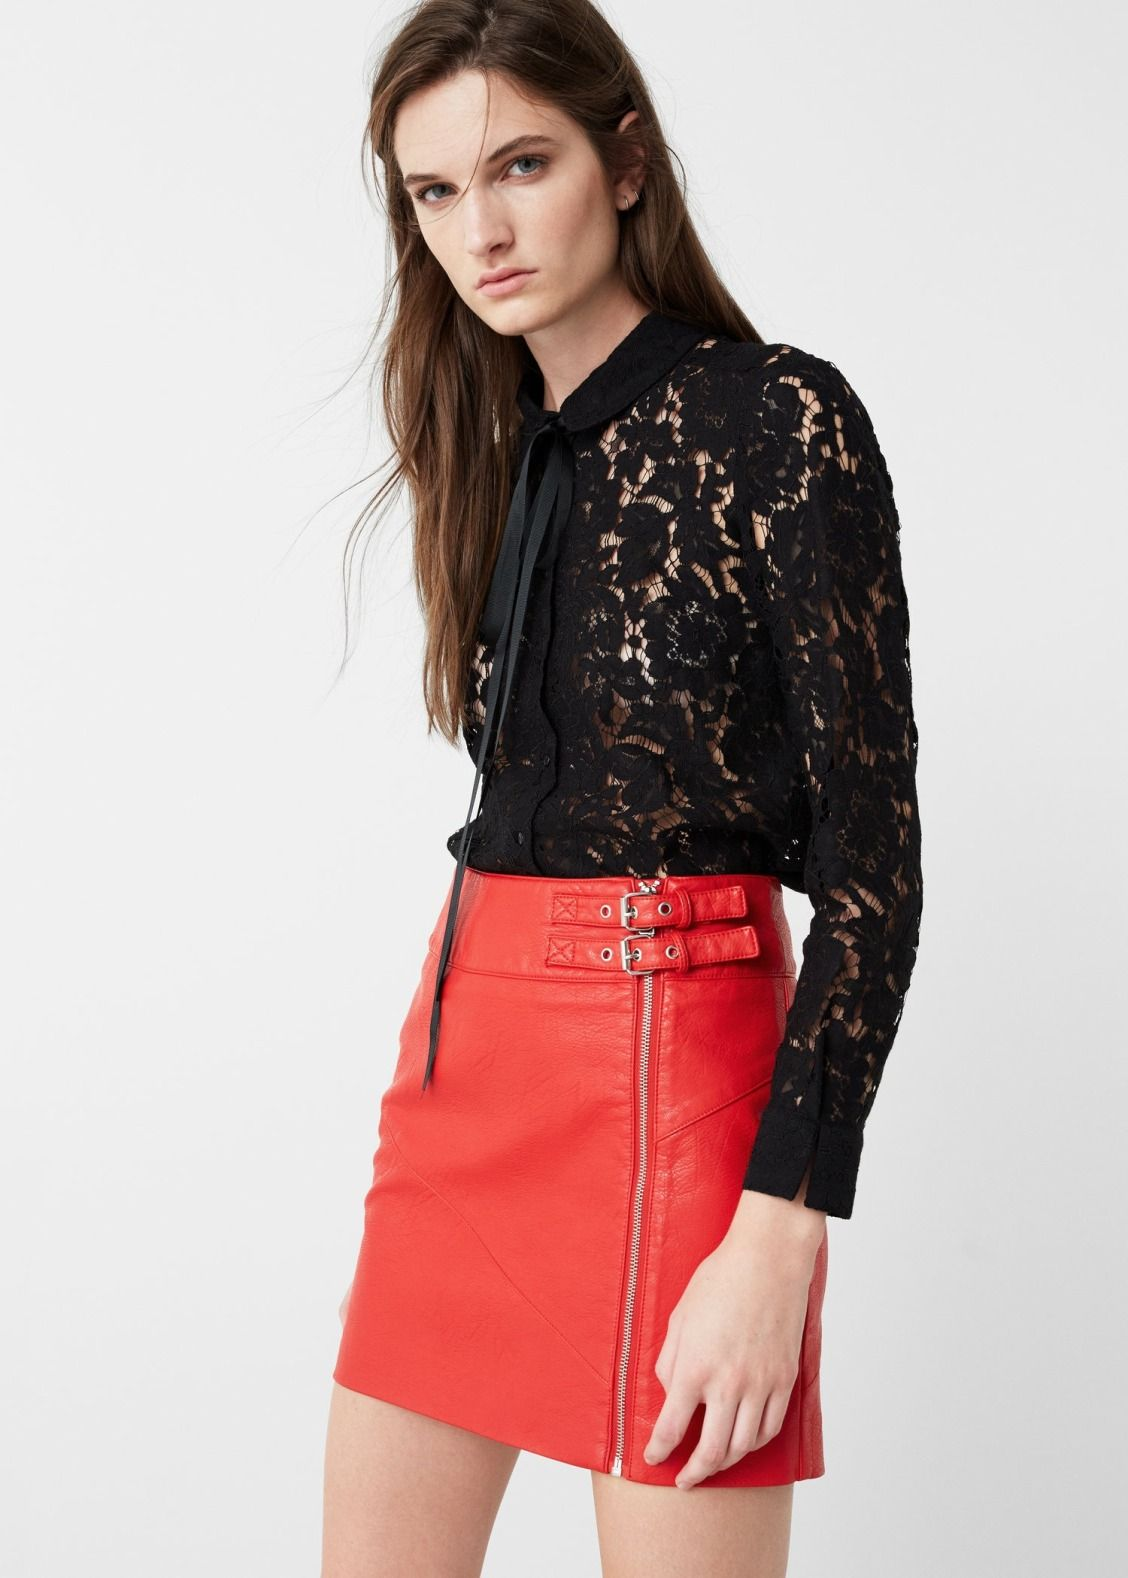 This sheer lace top screams sophistication and ediness.